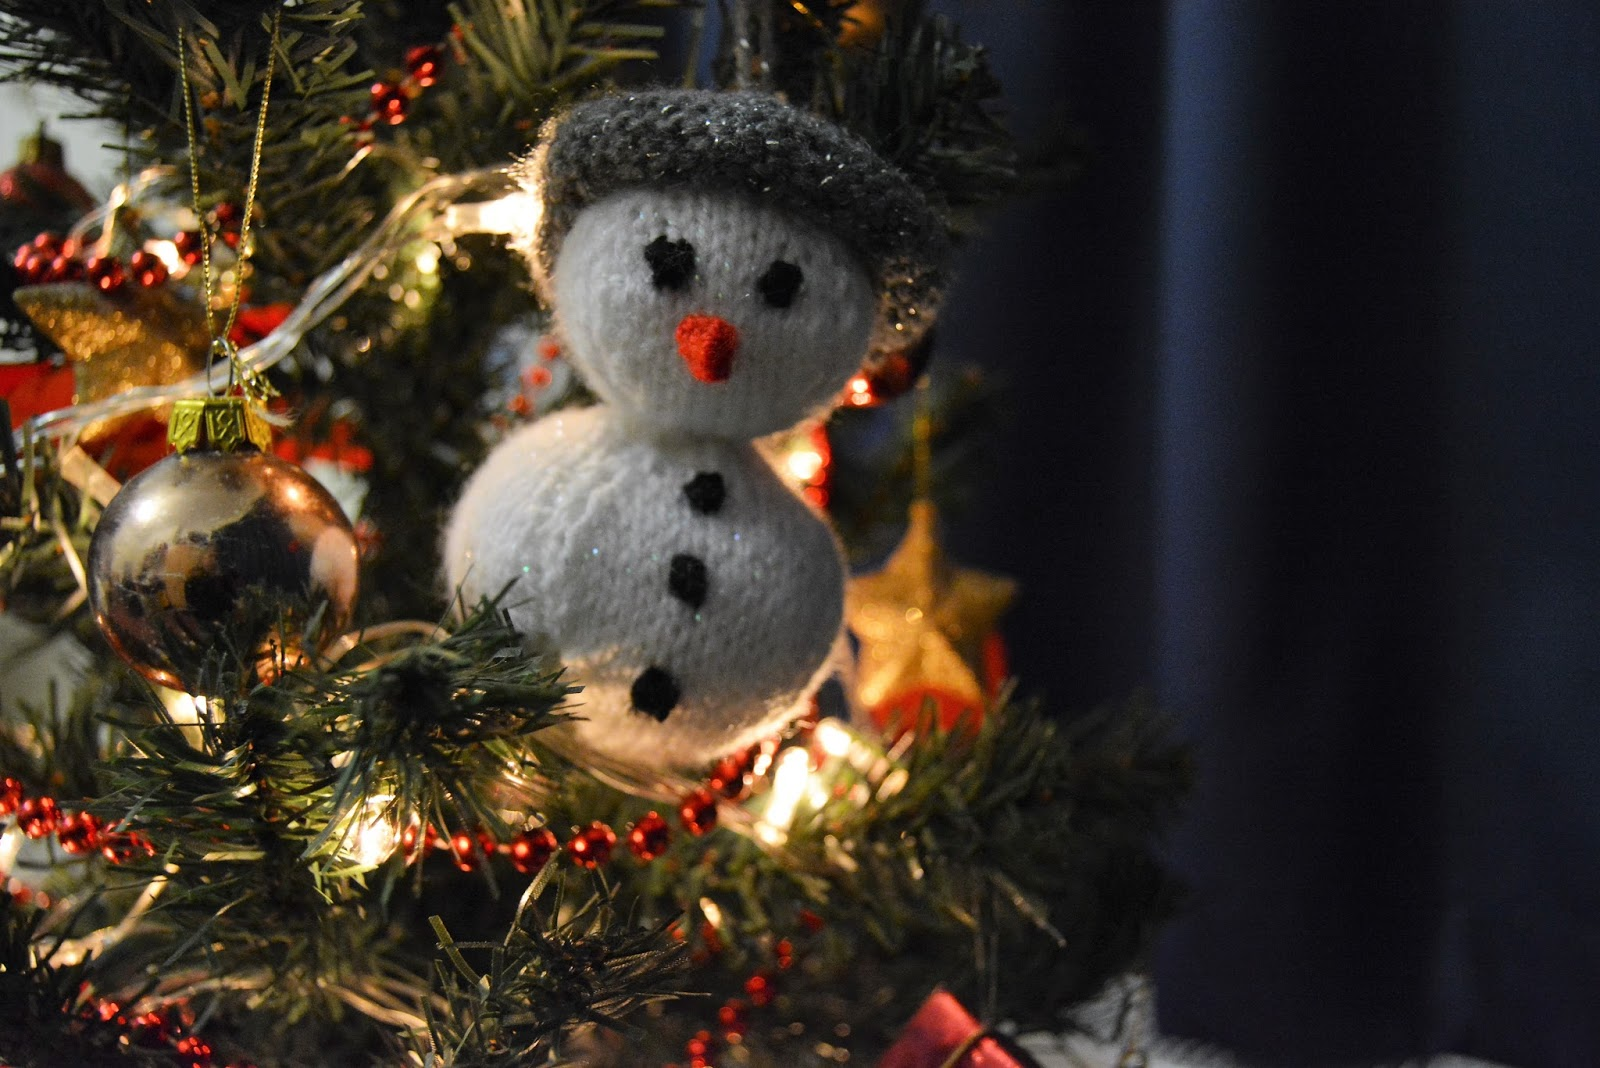 snowman, christmas, decoration, stocking filler, holidays, seasonal, december, fair, stalls, fundraising